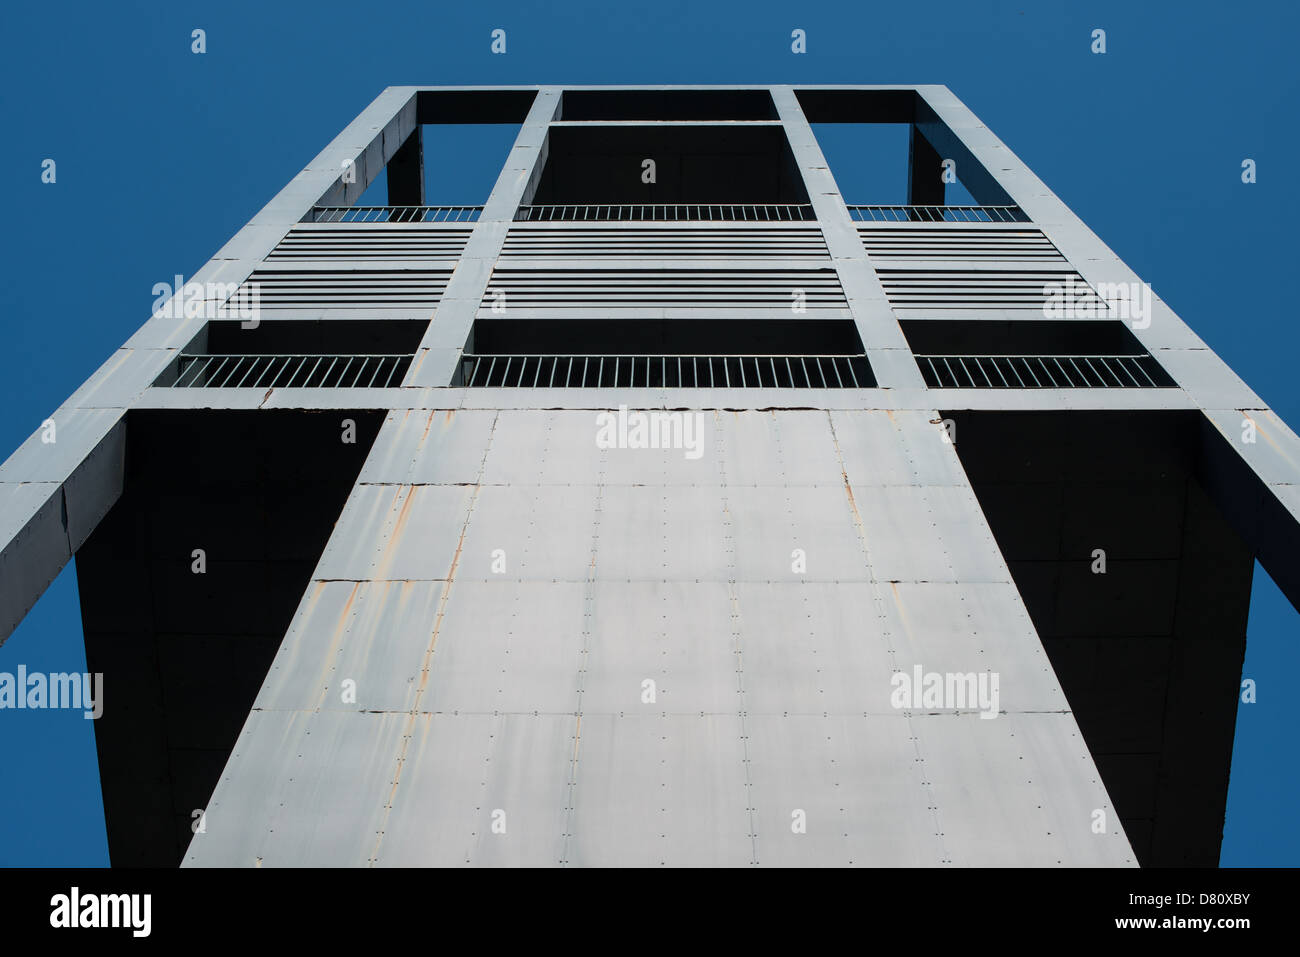 Western face of the Netherlands Carillon next to Arlington National Cemetery and the Iwo Jima Memorial. First donated in 1954, the Carillon was moved to its current location in 1960. It was a gift of the Netherlands to the United States in thanks for US aid during World War II. Stock Photo